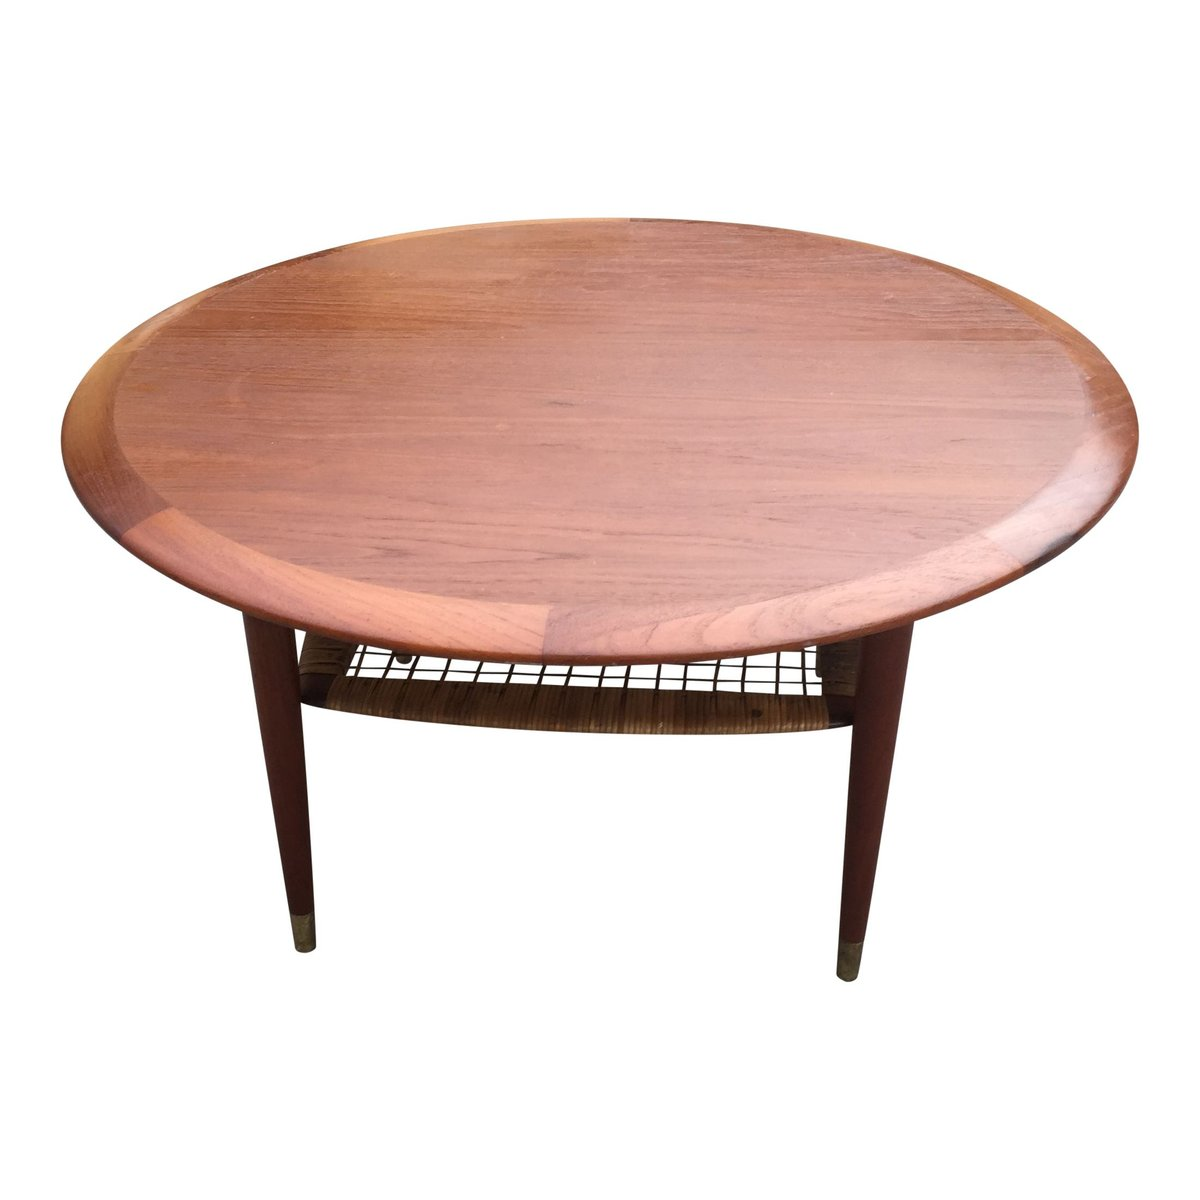 Old Teak Coffee Table: Vintage Danish Round Teak Coffee Table With Shelf For Sale